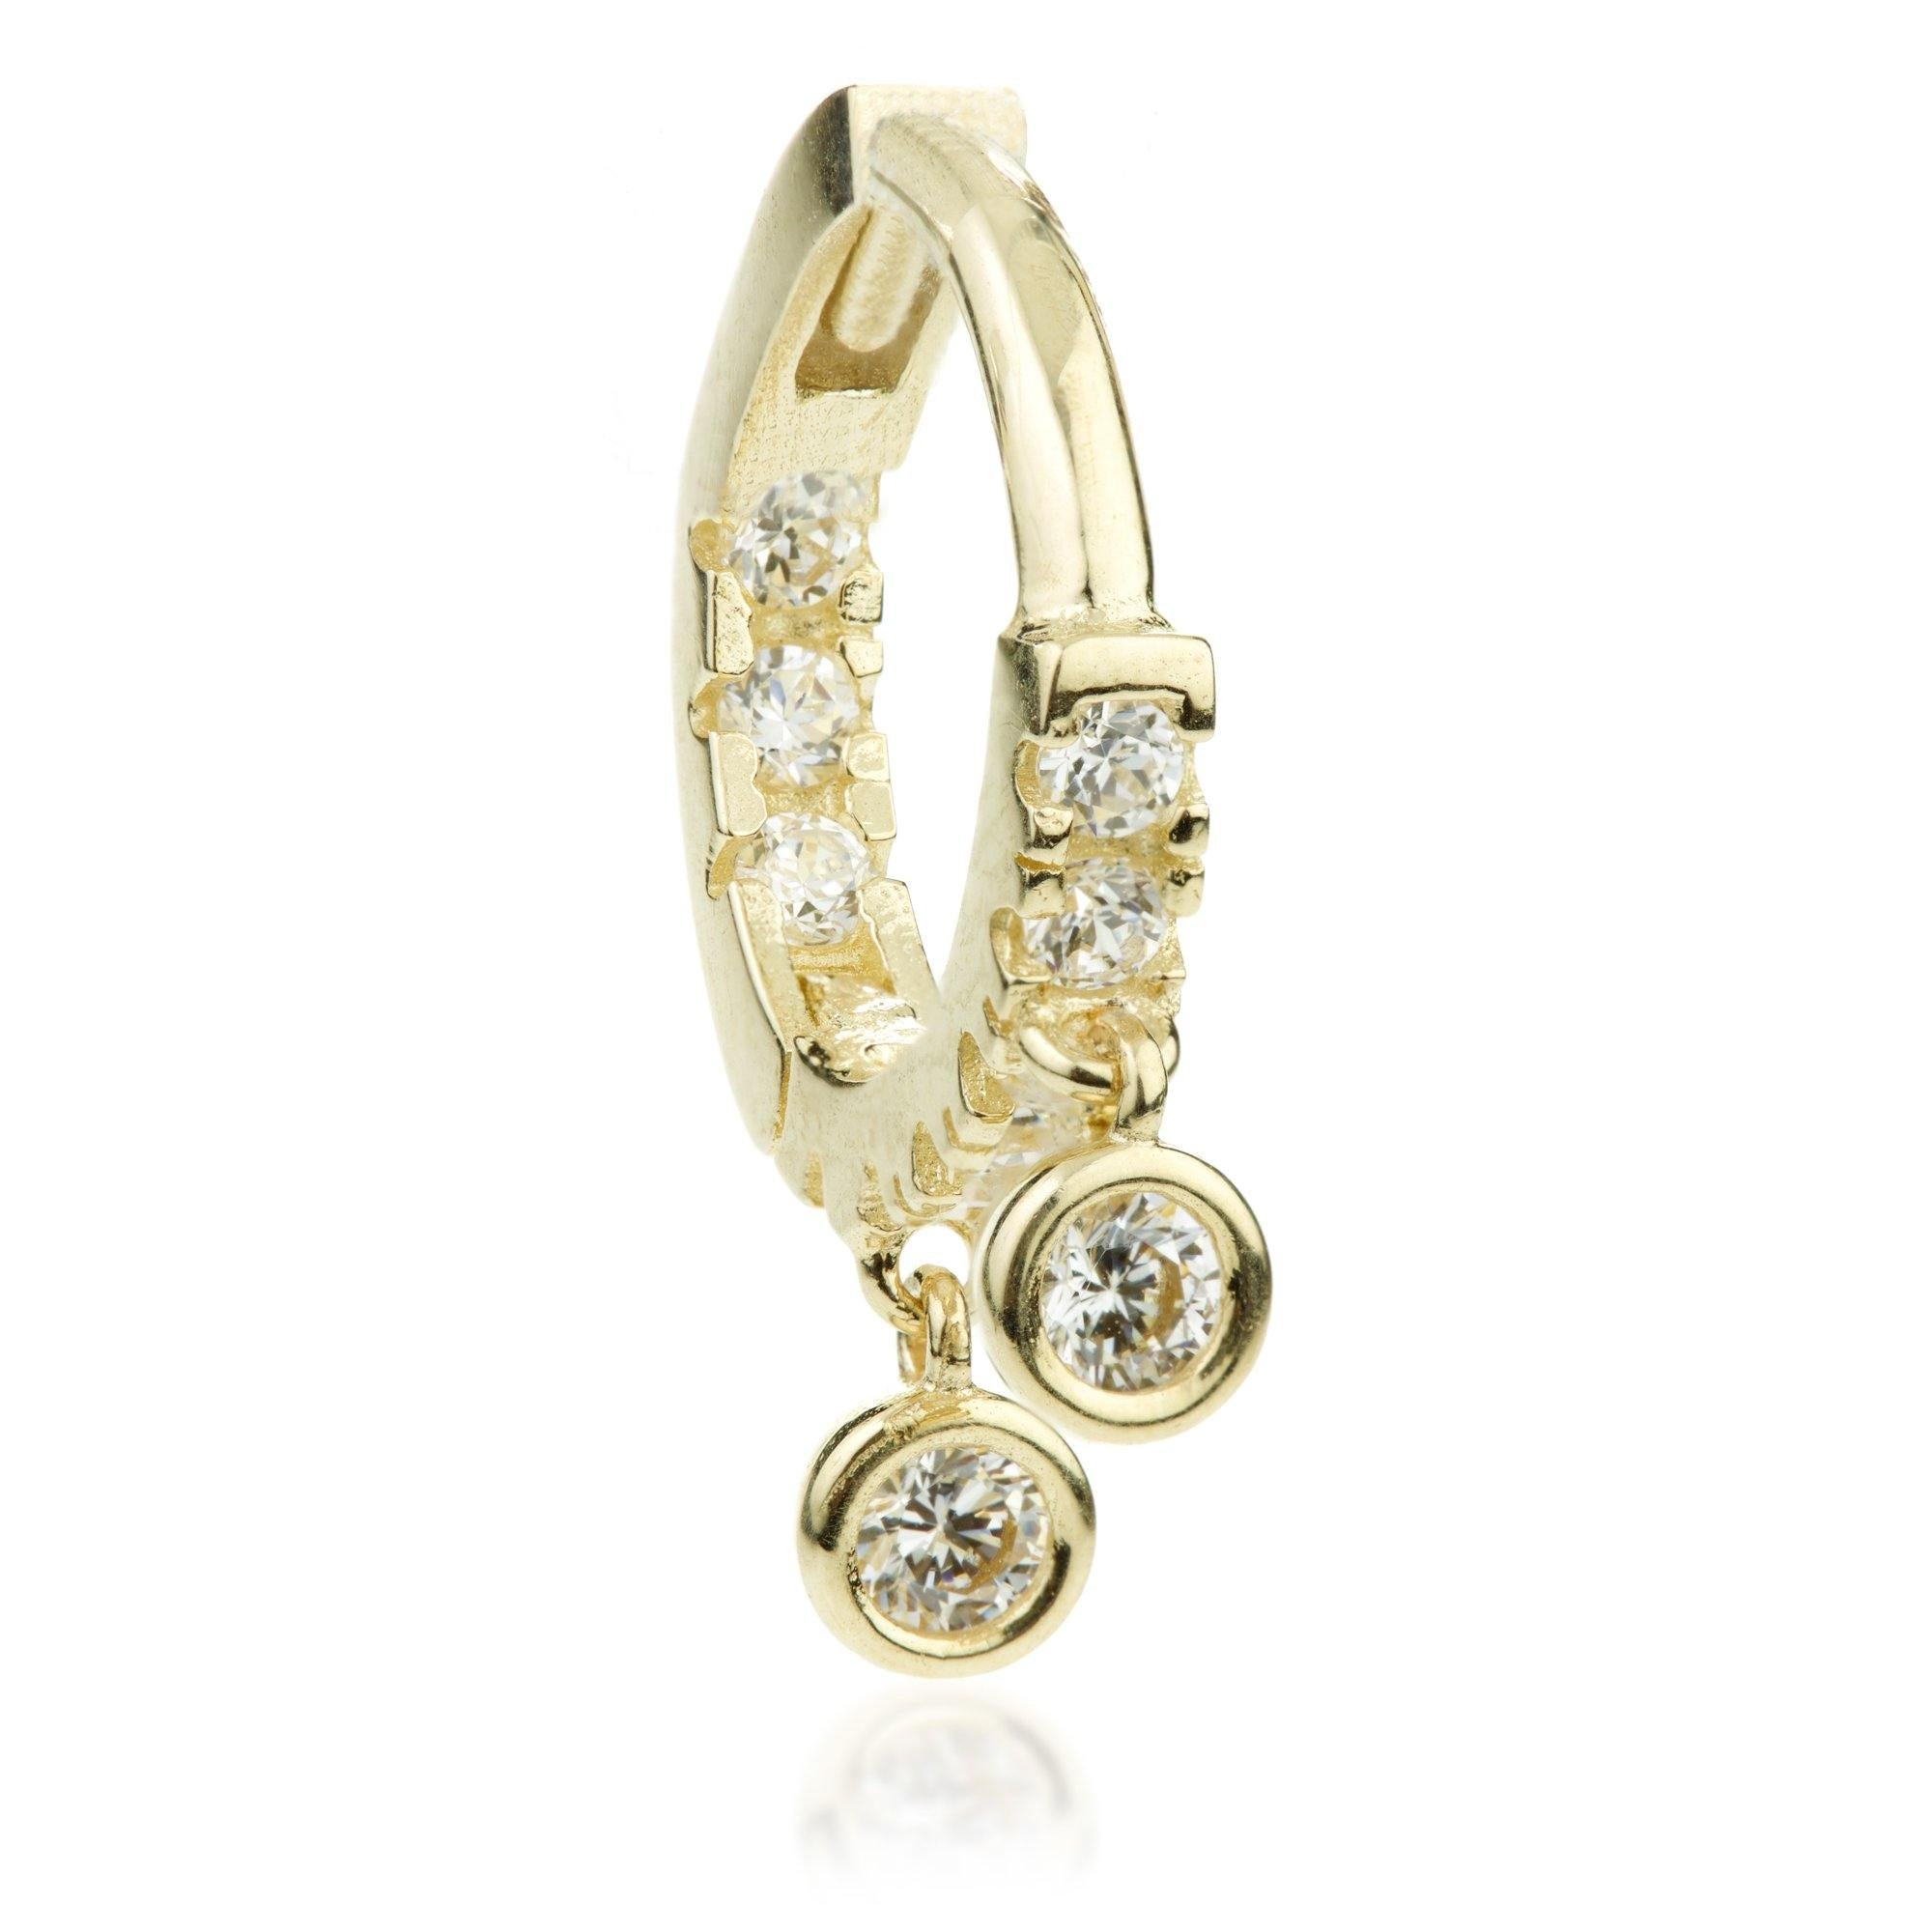 14ct Gold Crystal Double Charm Hoop Earring